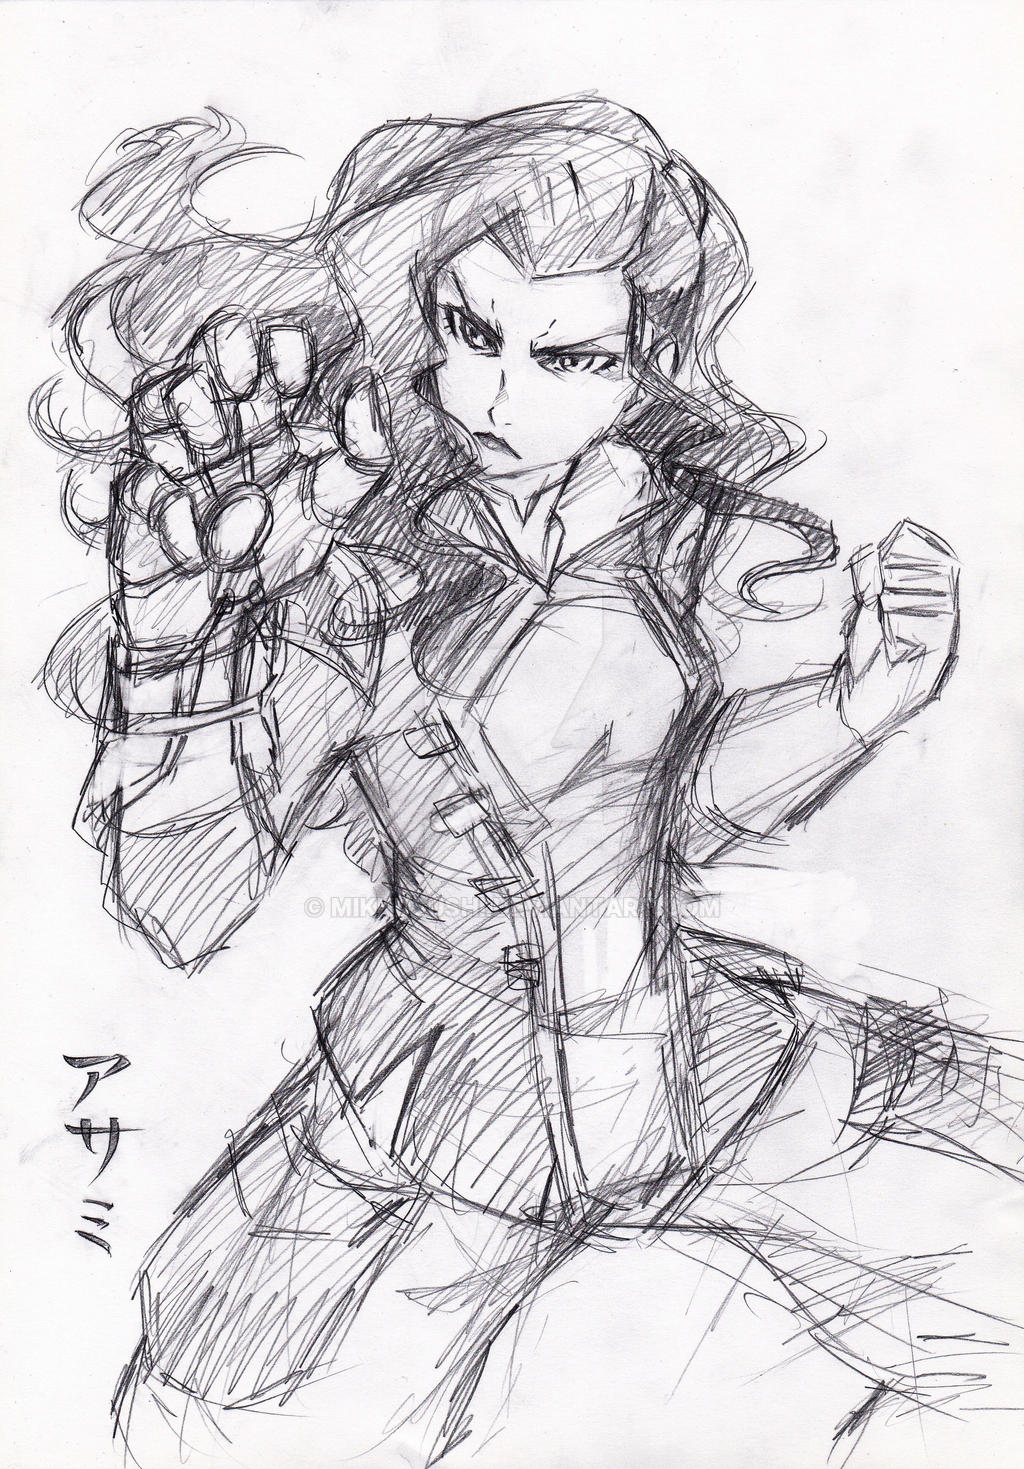 Asami rough sketch by RustyArtist